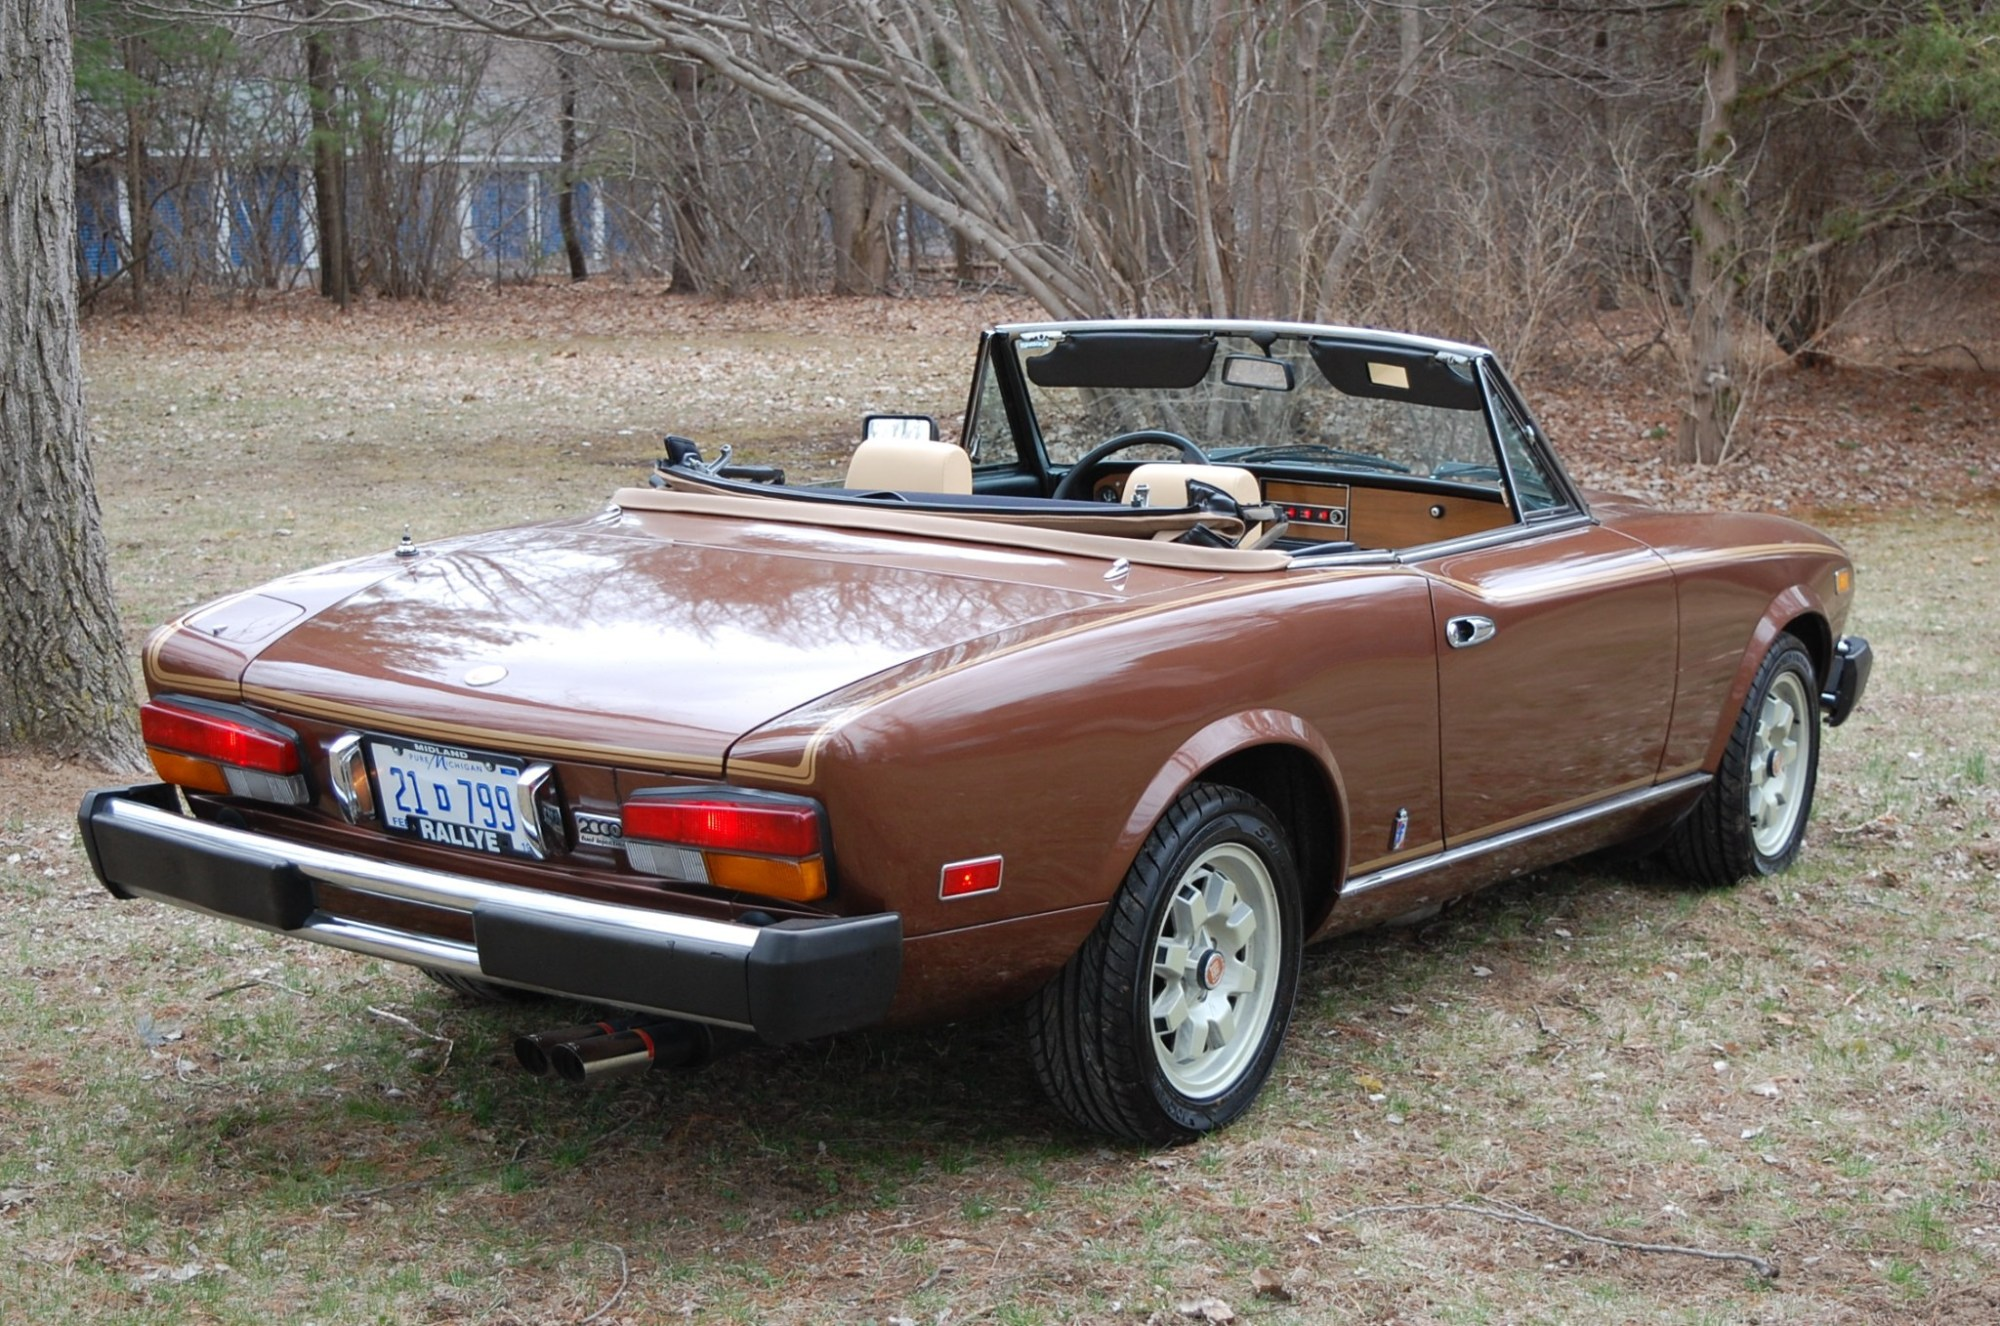 hight resolution of 1981 fiat 2000 turbo spider for sale on bat auctions sold for 13 500 on may 8 2018 lot 9 488 bring a trailer